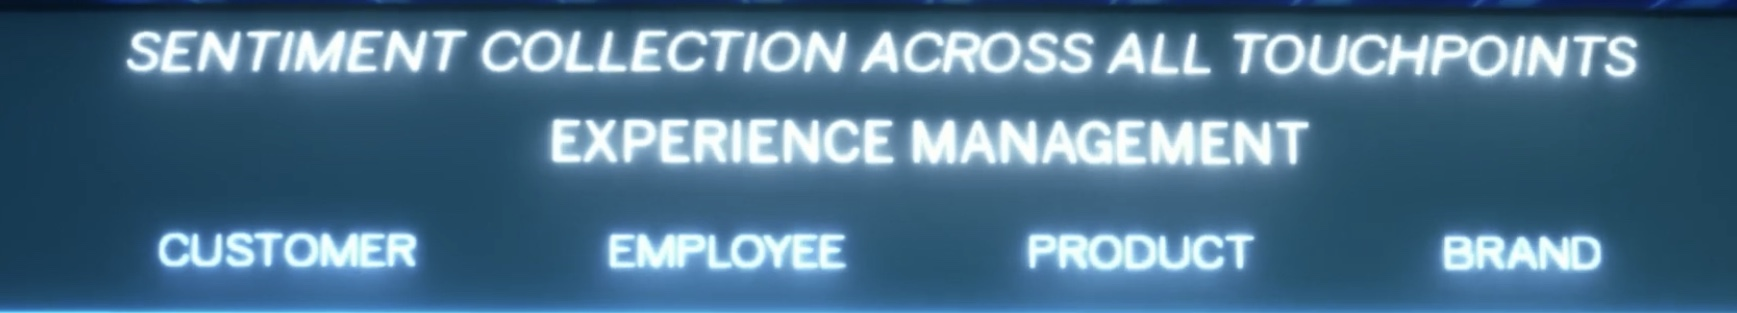 Evolution%20of%20Experience%20Management